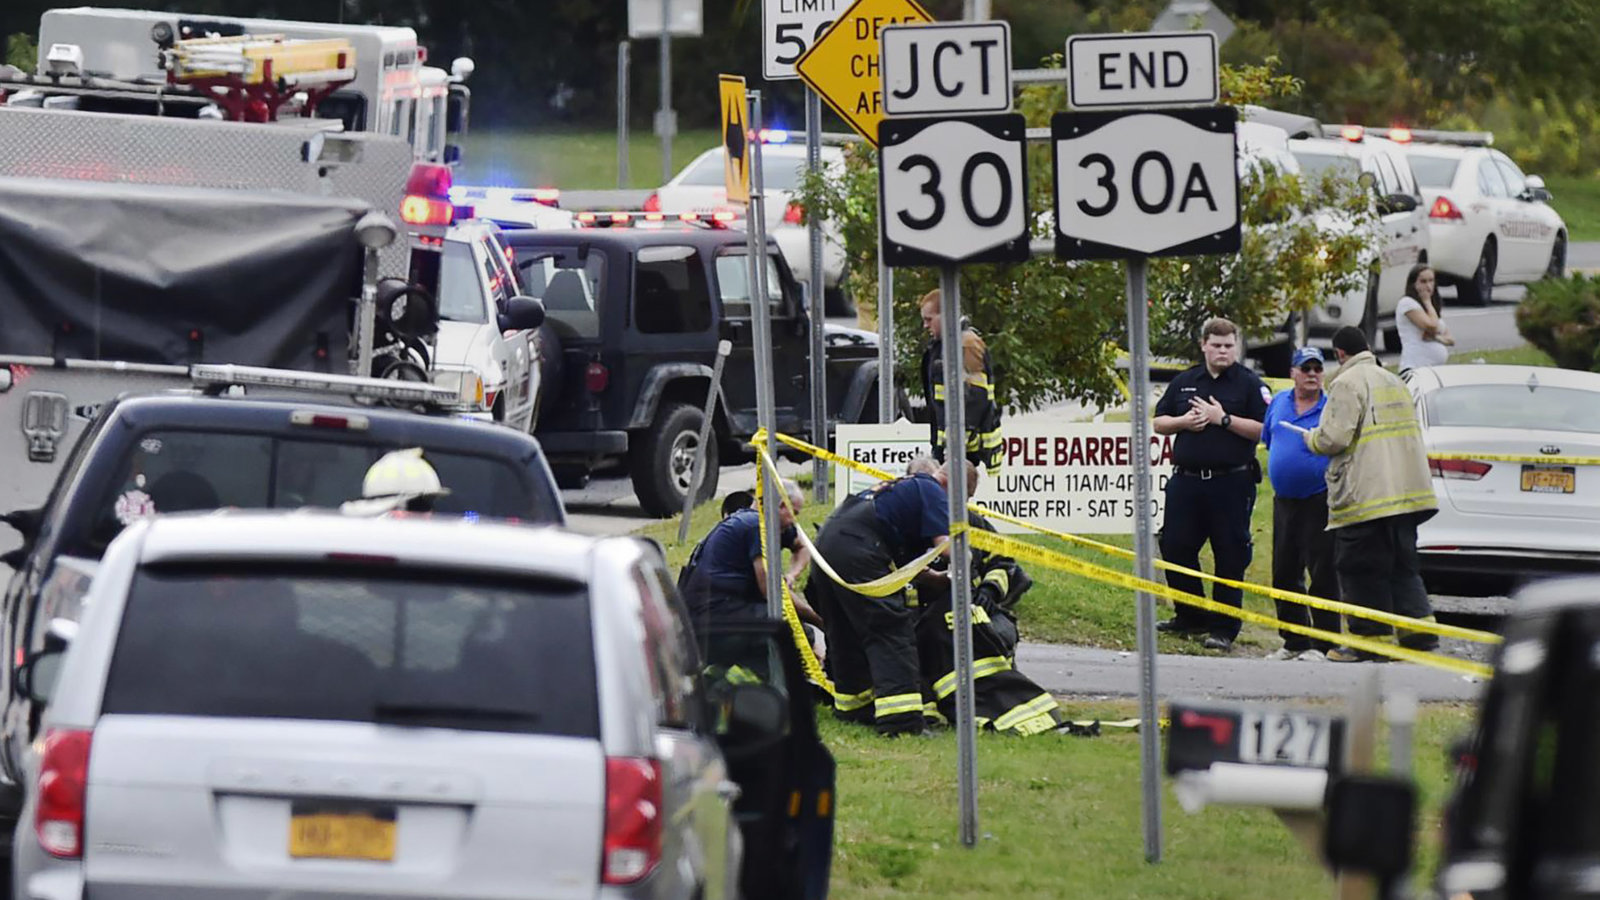 Traffic Accident Investigator Cover Letter 20 Killed In Limo Crash In New York Deadliest U S Accident In 9